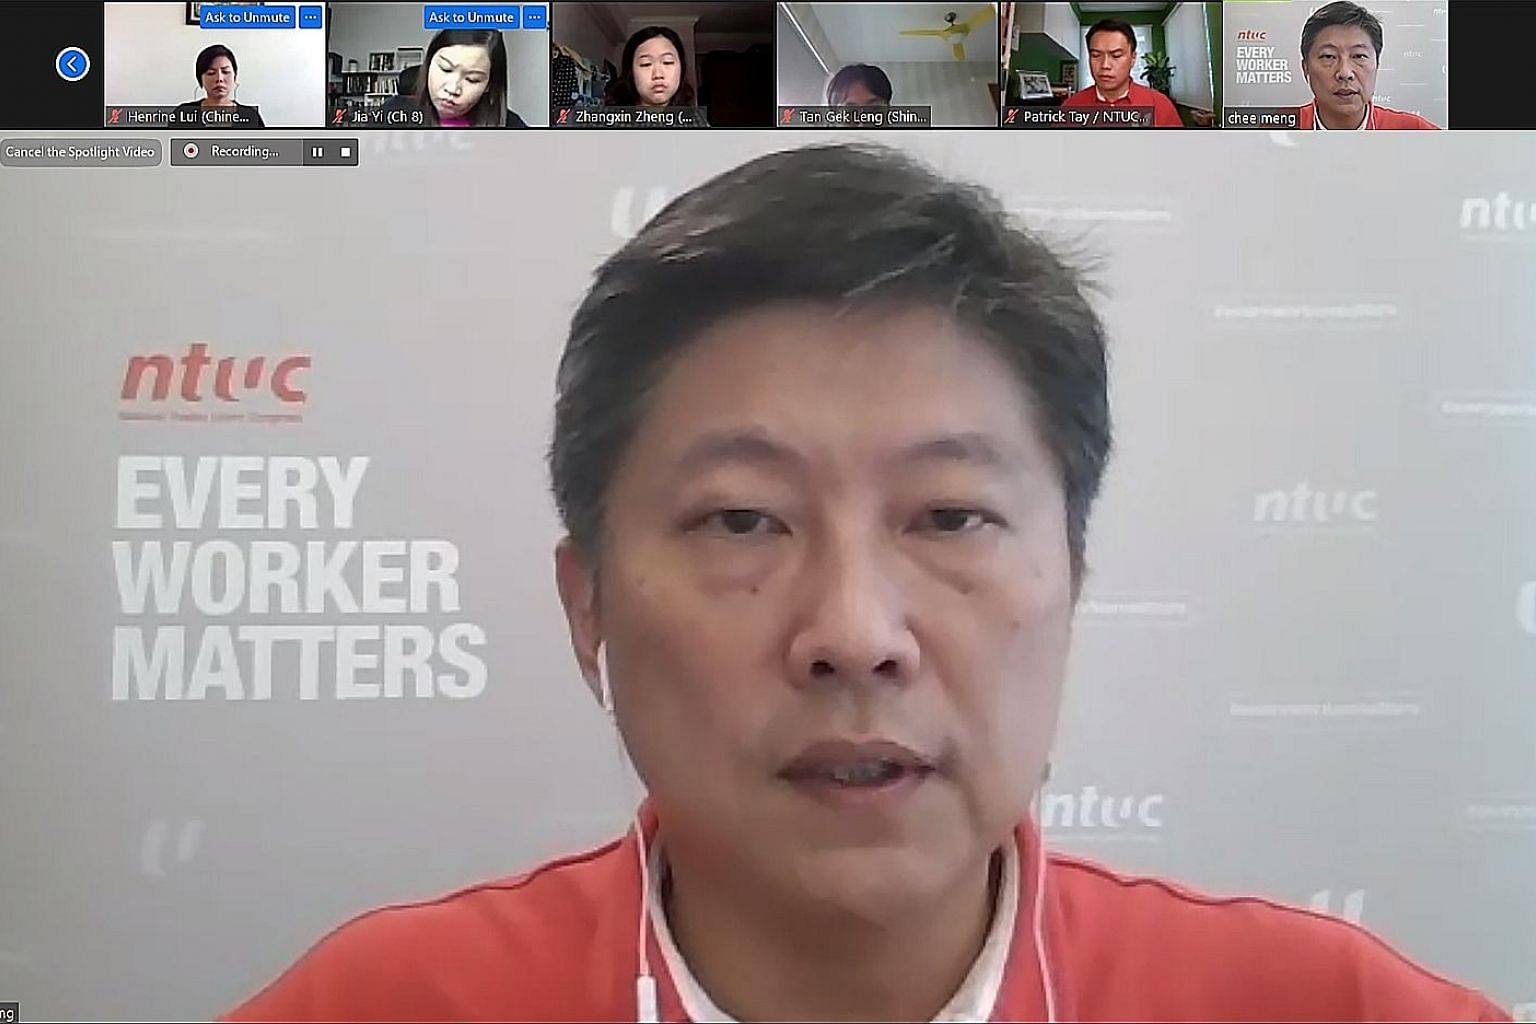 Speaking to reporters via video link, NTUC chief Ng Chee Meng said it wants to work with the Government to review foreign manpower policy options.